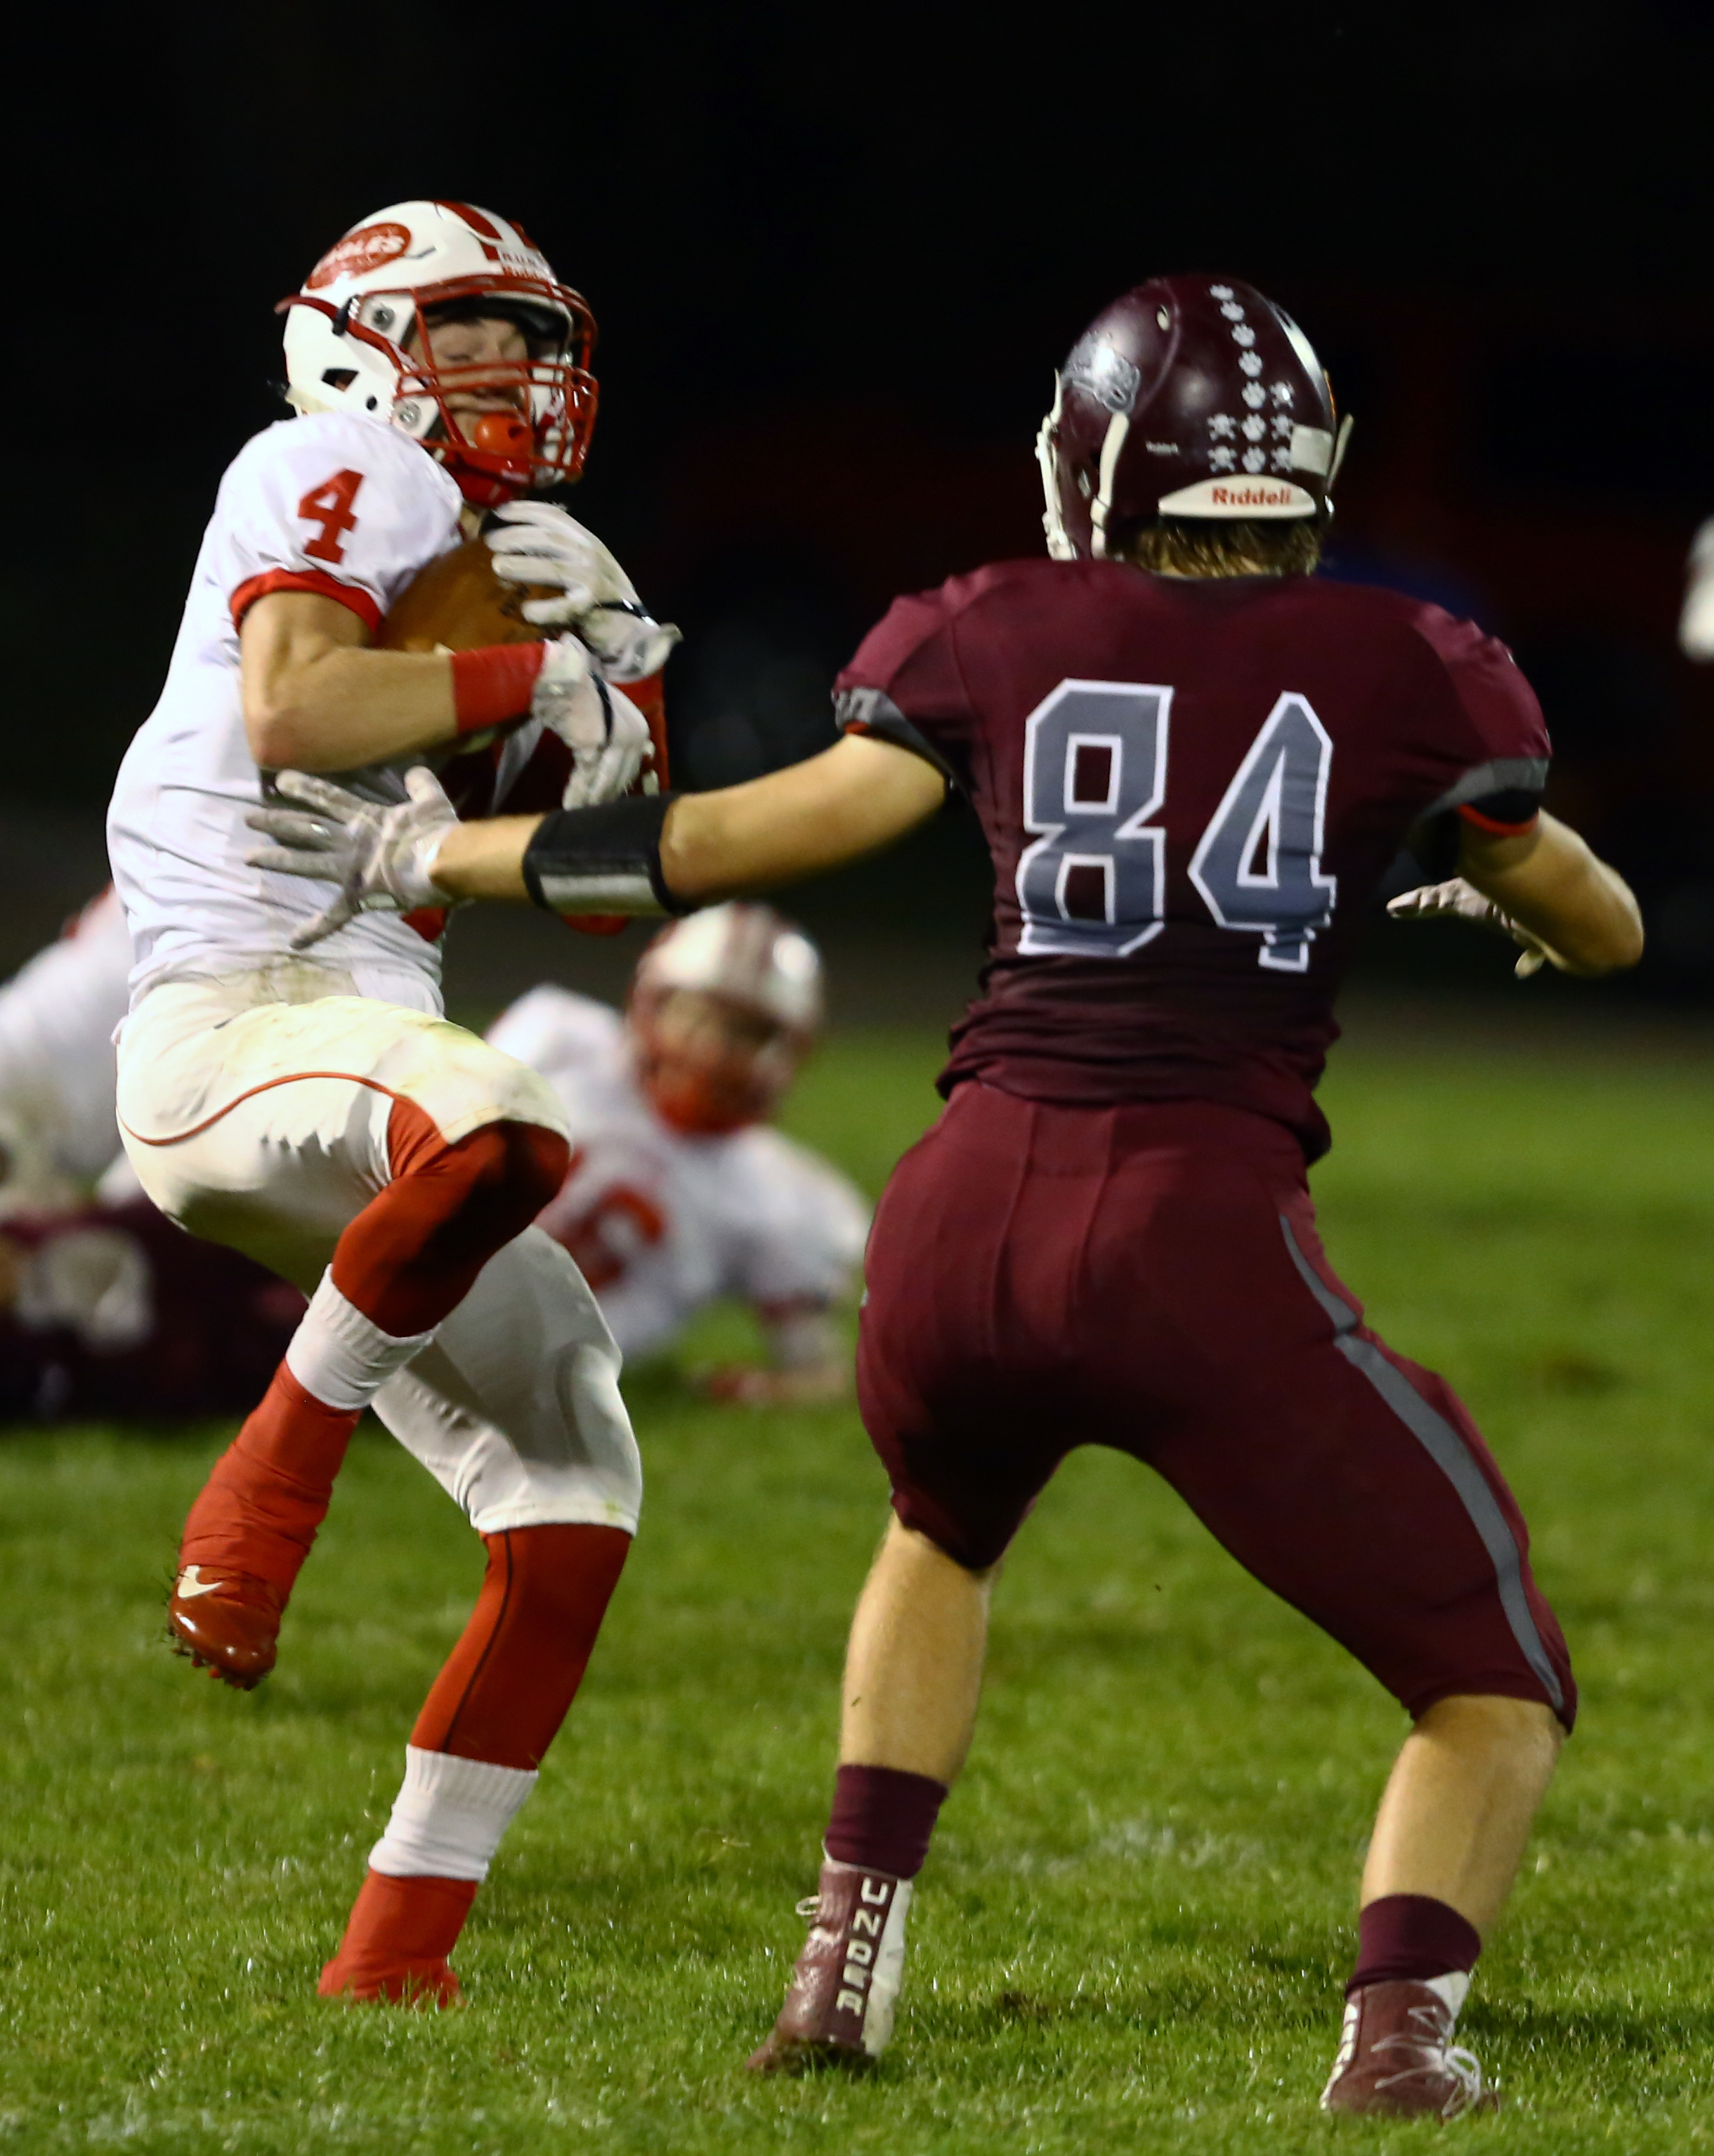 Eastwood High School defensive back Cade Boos intercepts a pass intended for Rossford High School Adam Sauter in the first half of the football game at Rossford High School on Friday, Oct. 28, 2016. Eastwood leads at the half 42-21.